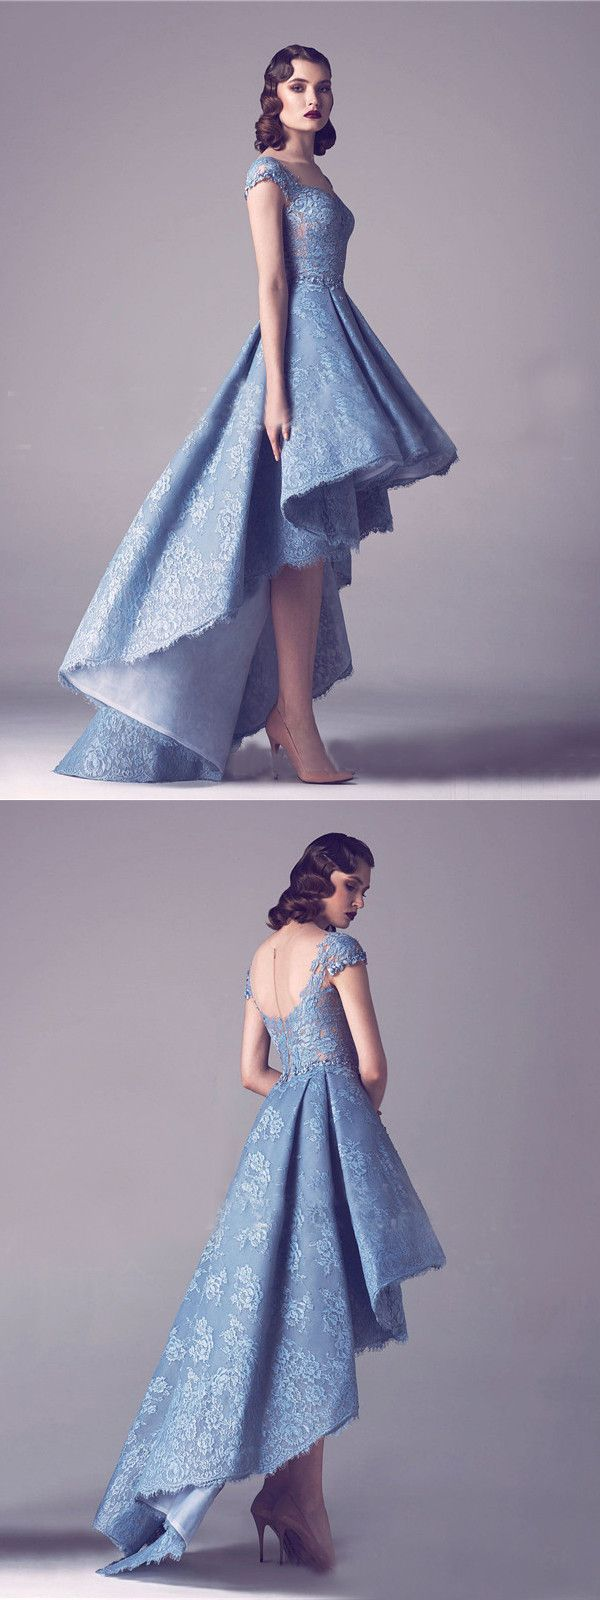 Aline scoop blue asymmetrical homecoming dress lace short prom